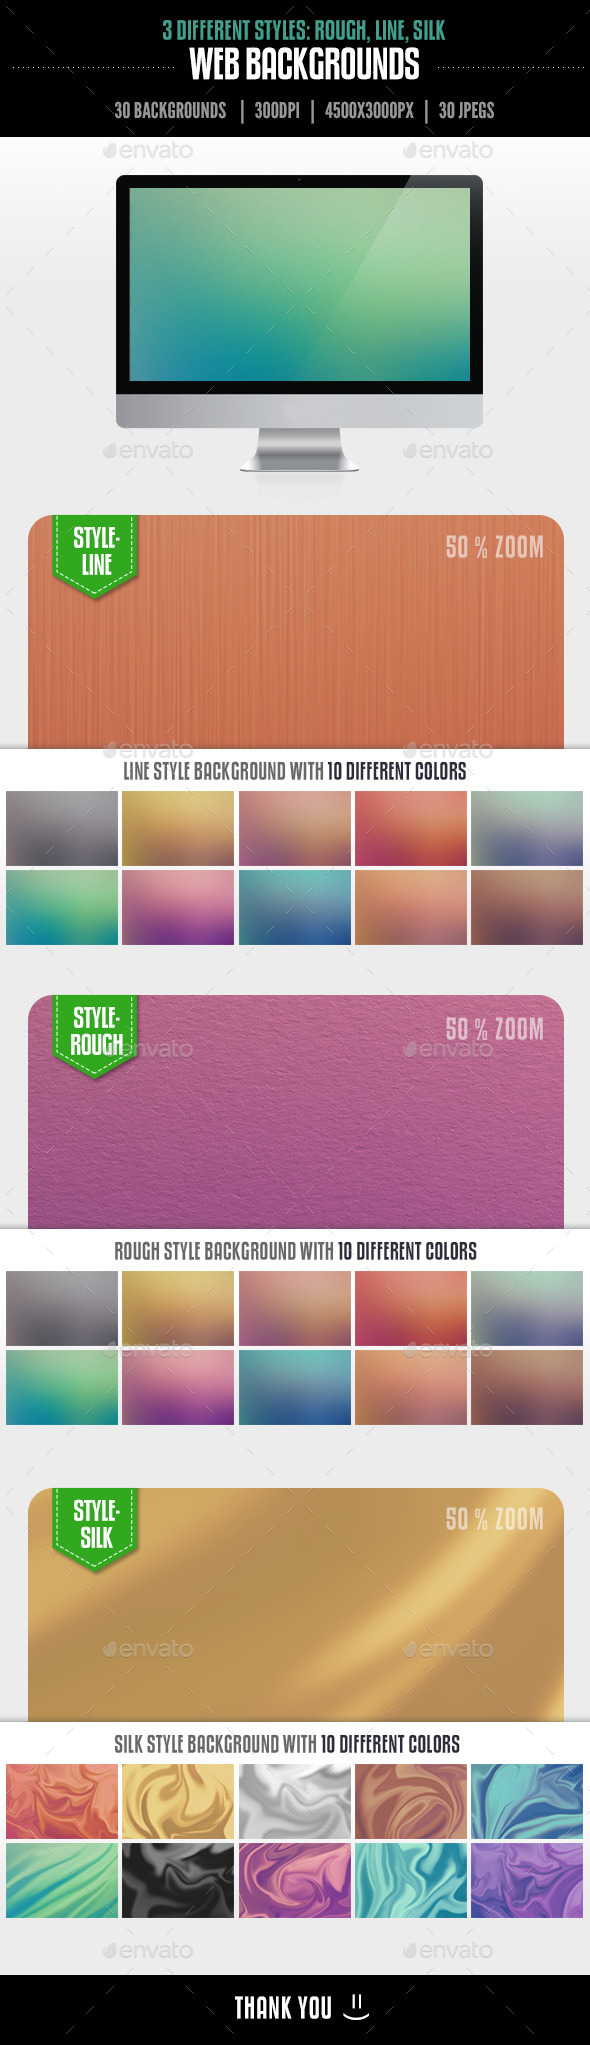 GraphicRiver 30 Web Backgrounds Rough Silk and Line Styles 11556585